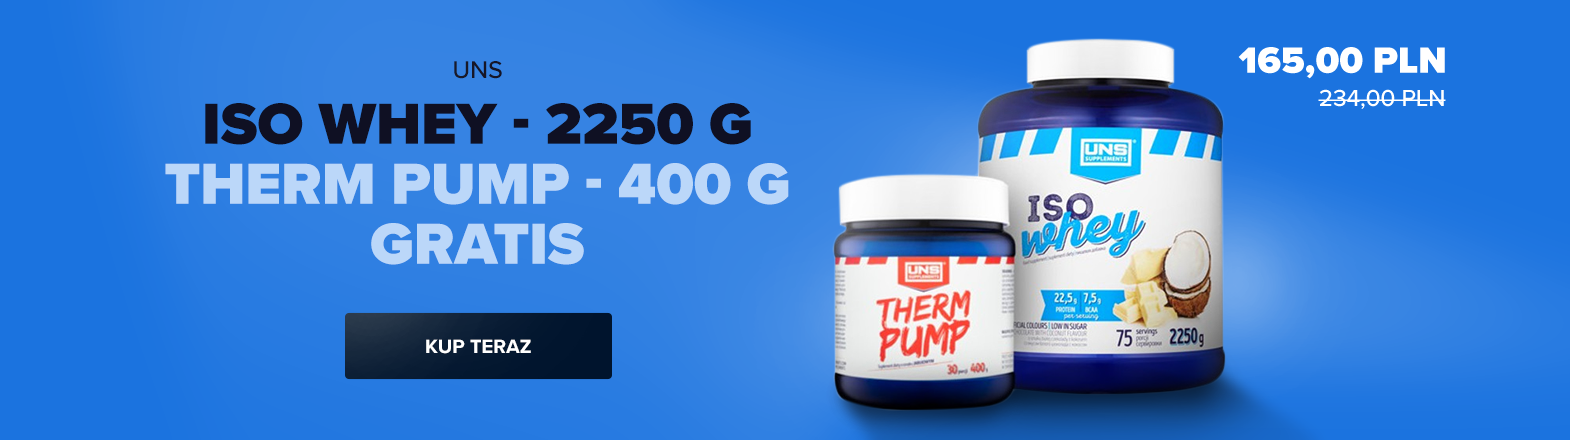 UNS Iso Whey - 2250 g + Therm Pump - 400 g [GRATIS]